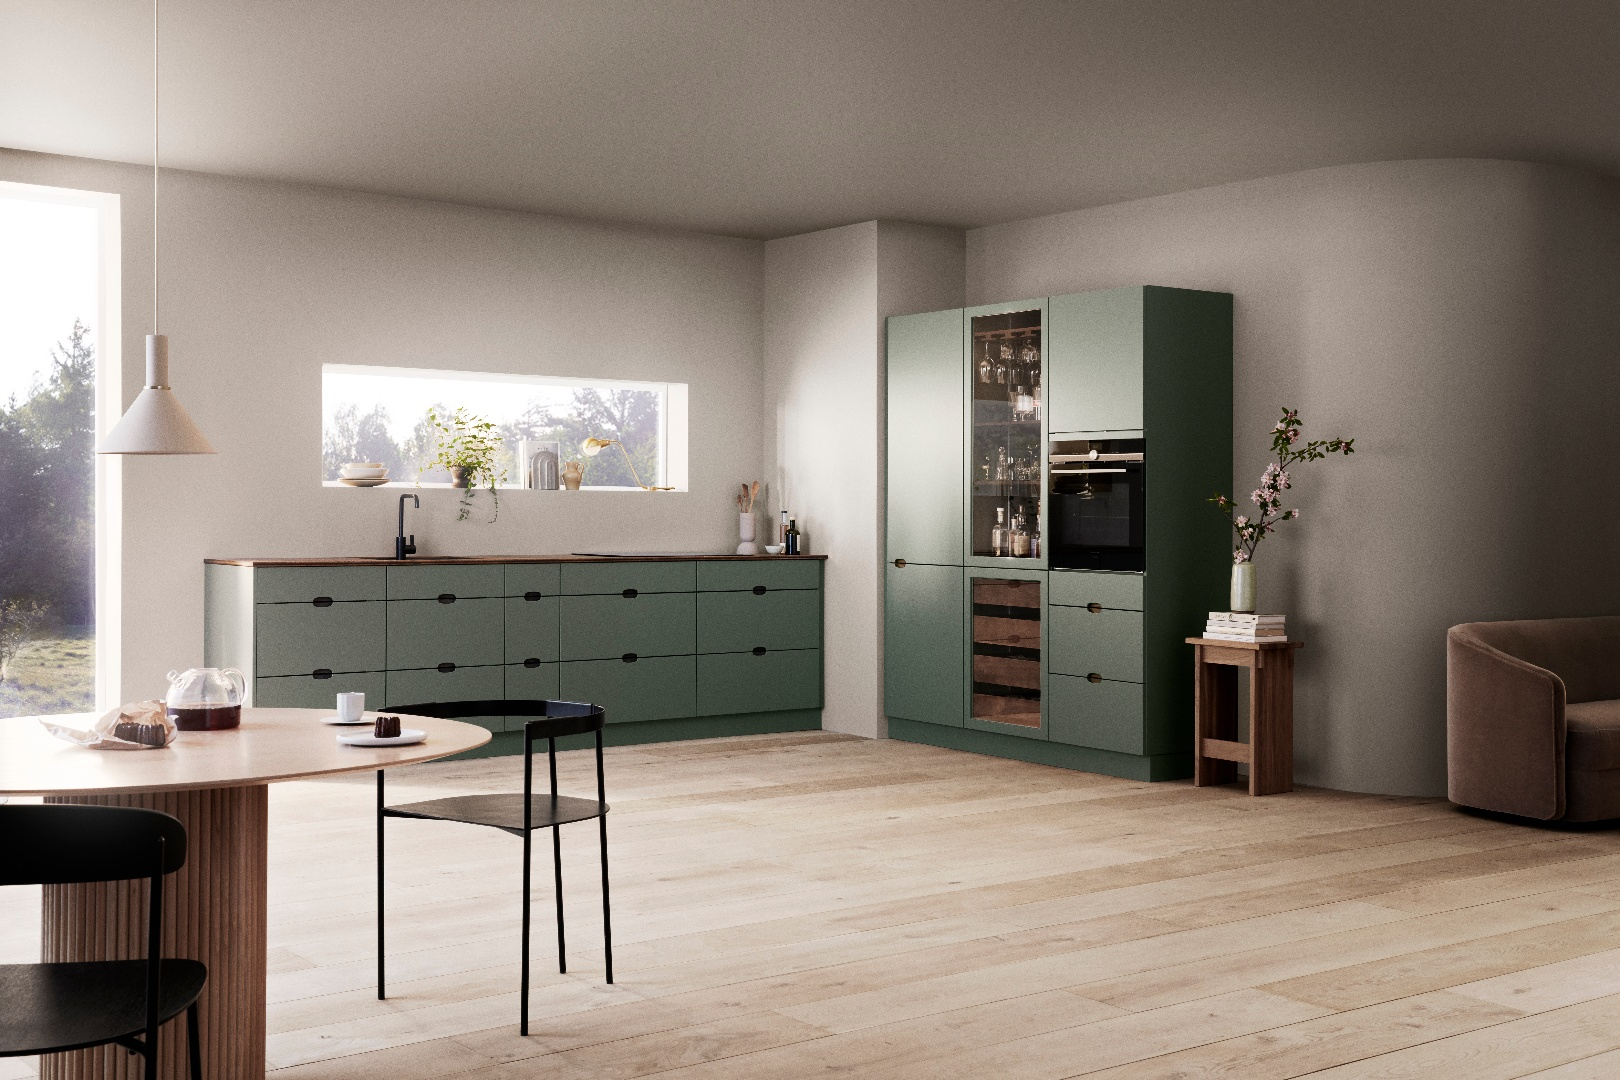 Kvik_kitchen_Ombra_green_main.jpg